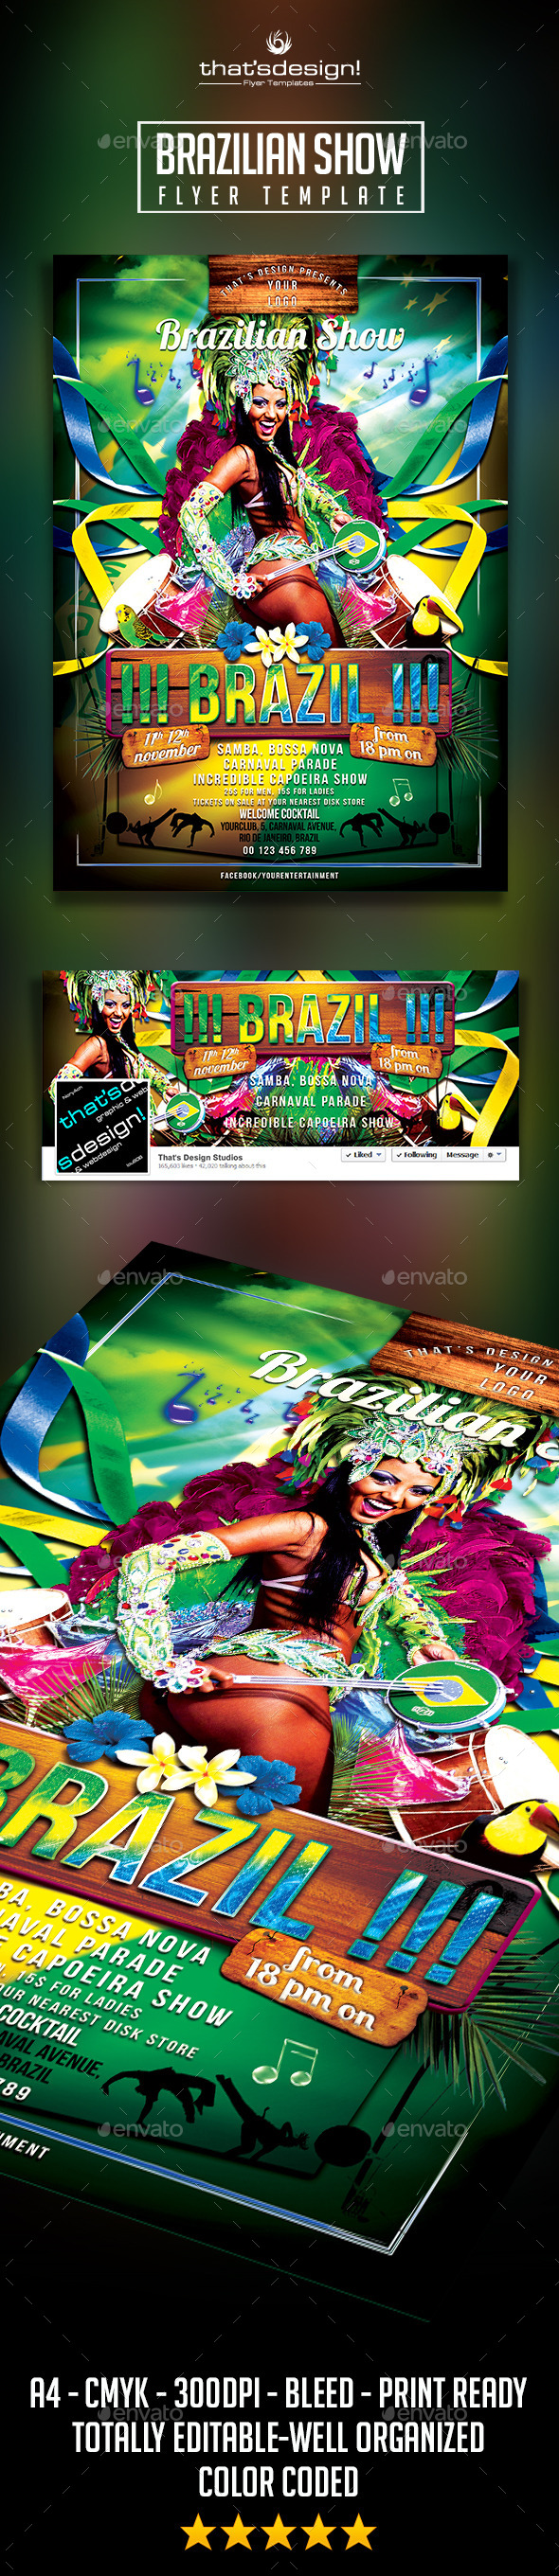 Brazilian Show Flyer Template - Clubs & Parties Events